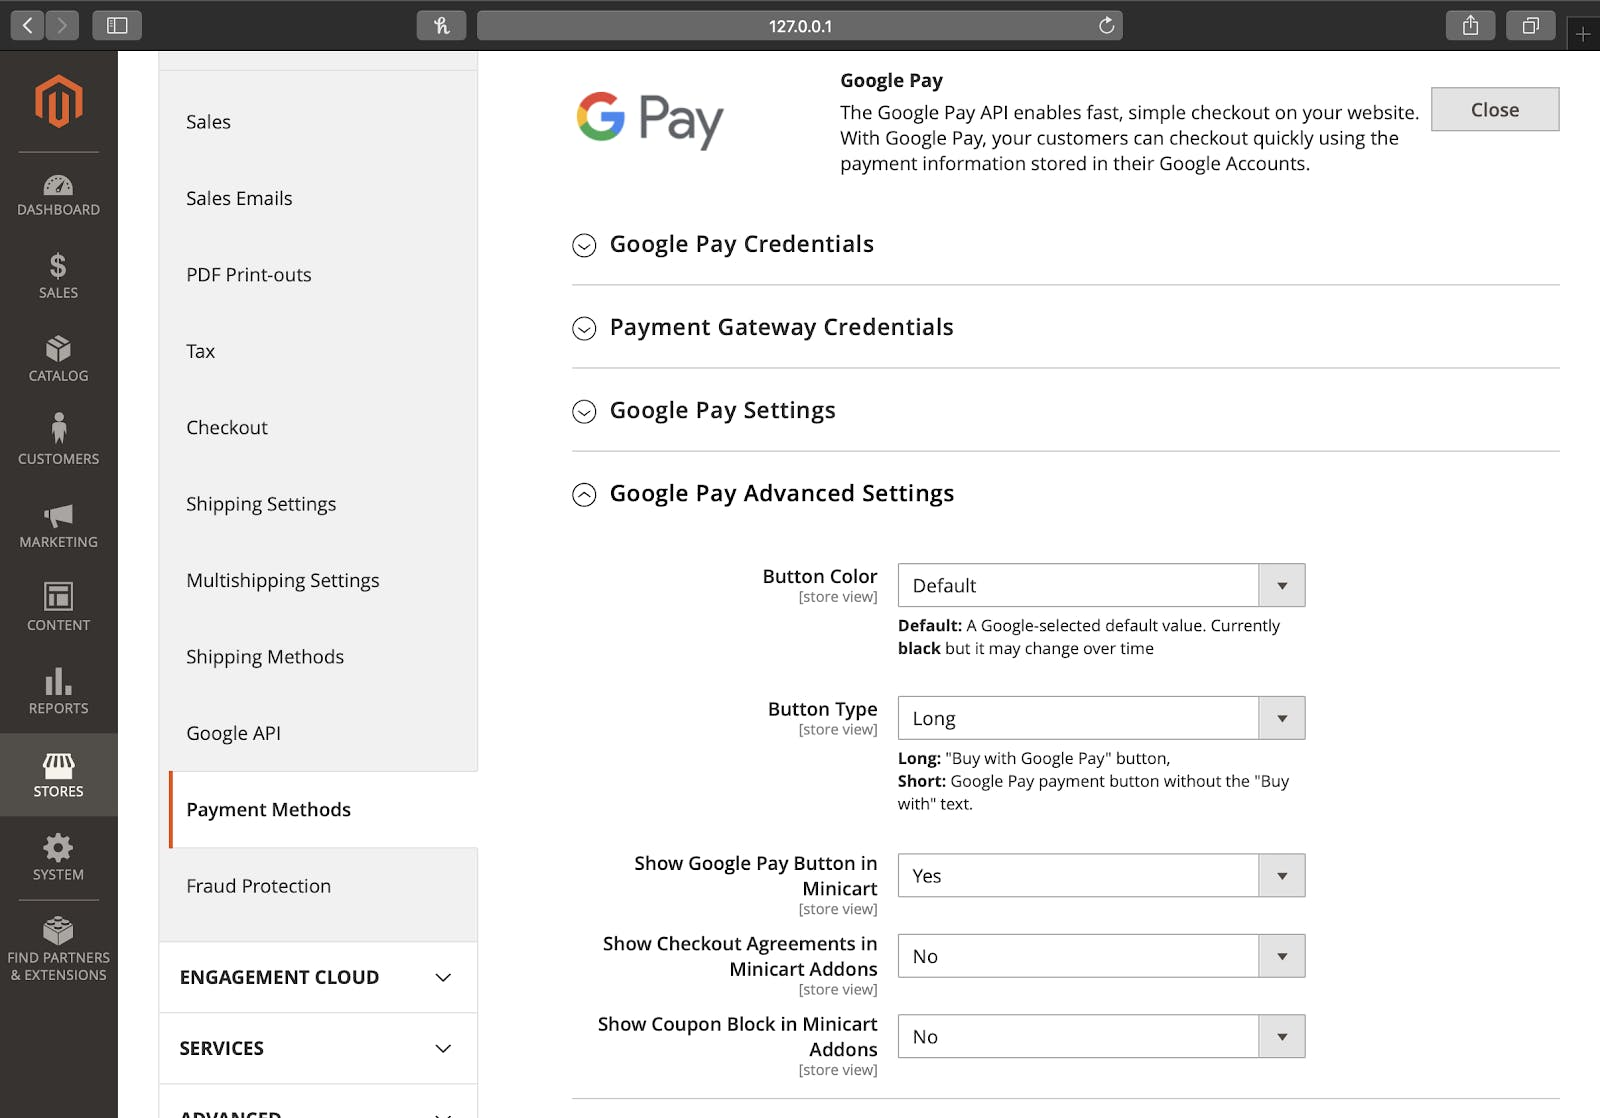 Magento 2 Google Pay configuring it inside the admin panel